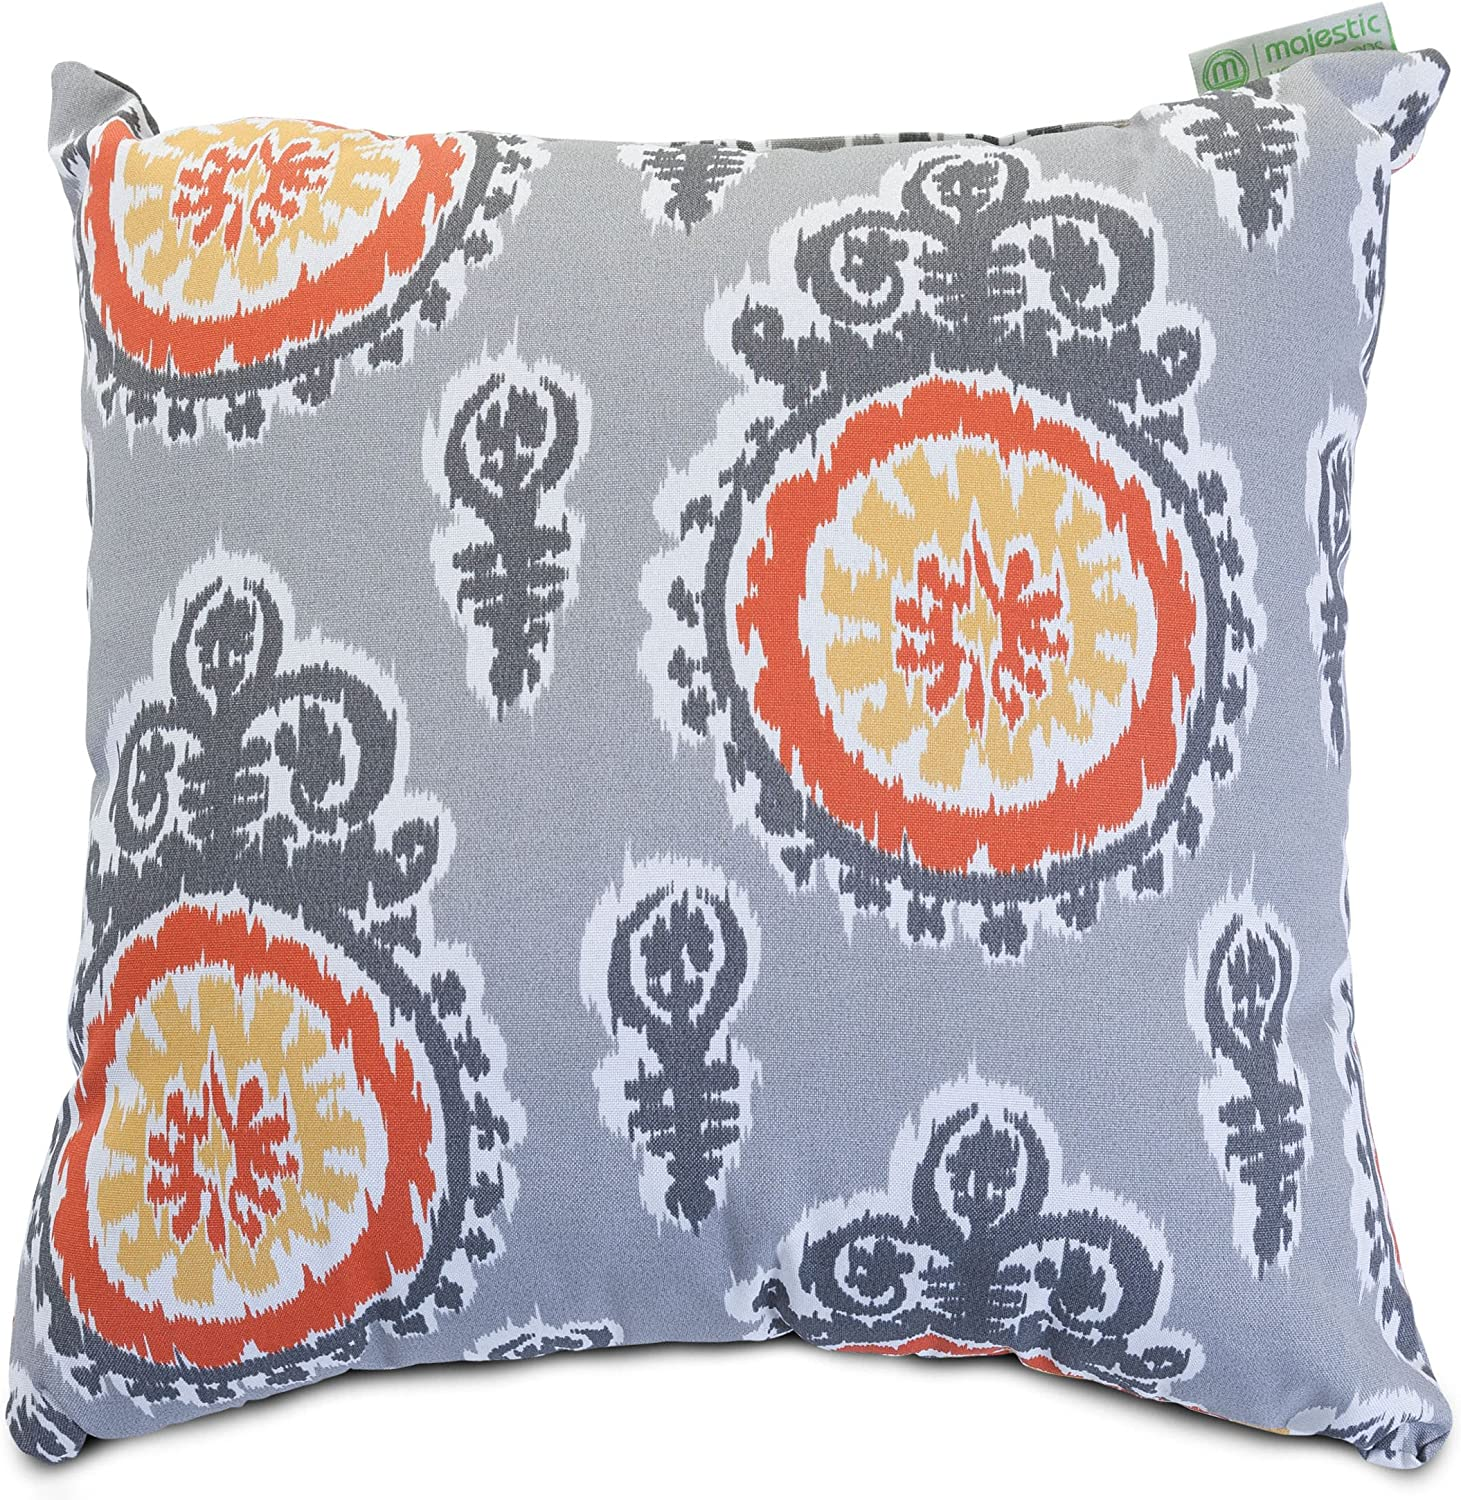 Majestic Home Goods Citrus Michelle Large Pillow